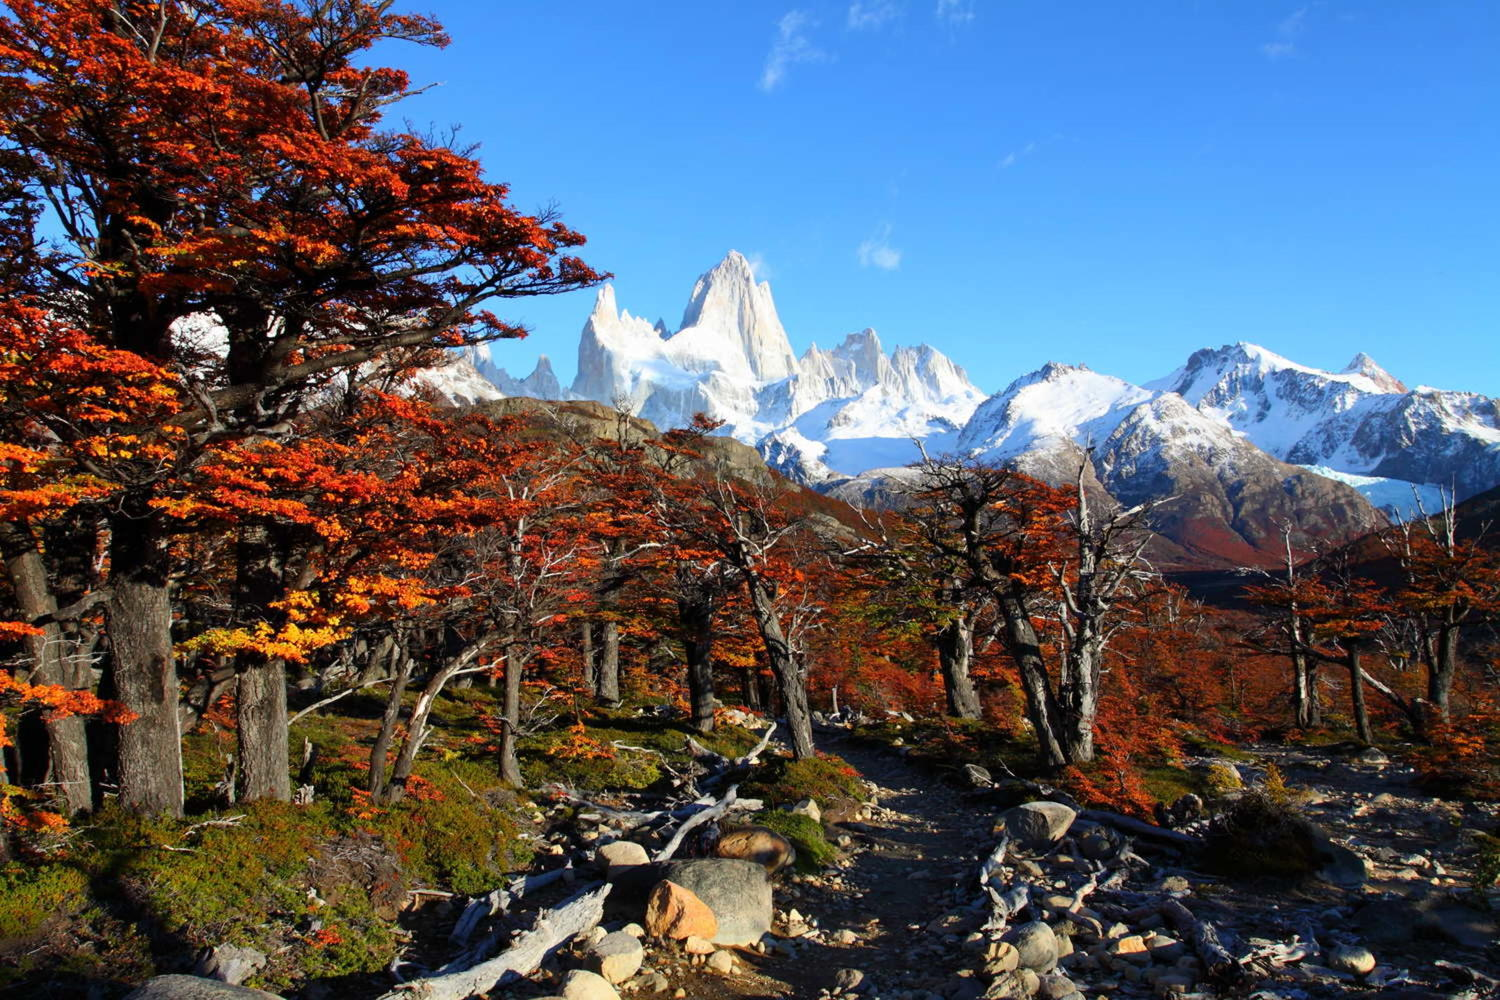 Beautiful nature landscape with Mt. Fitz Roy as seen in Los Glaciares National Park